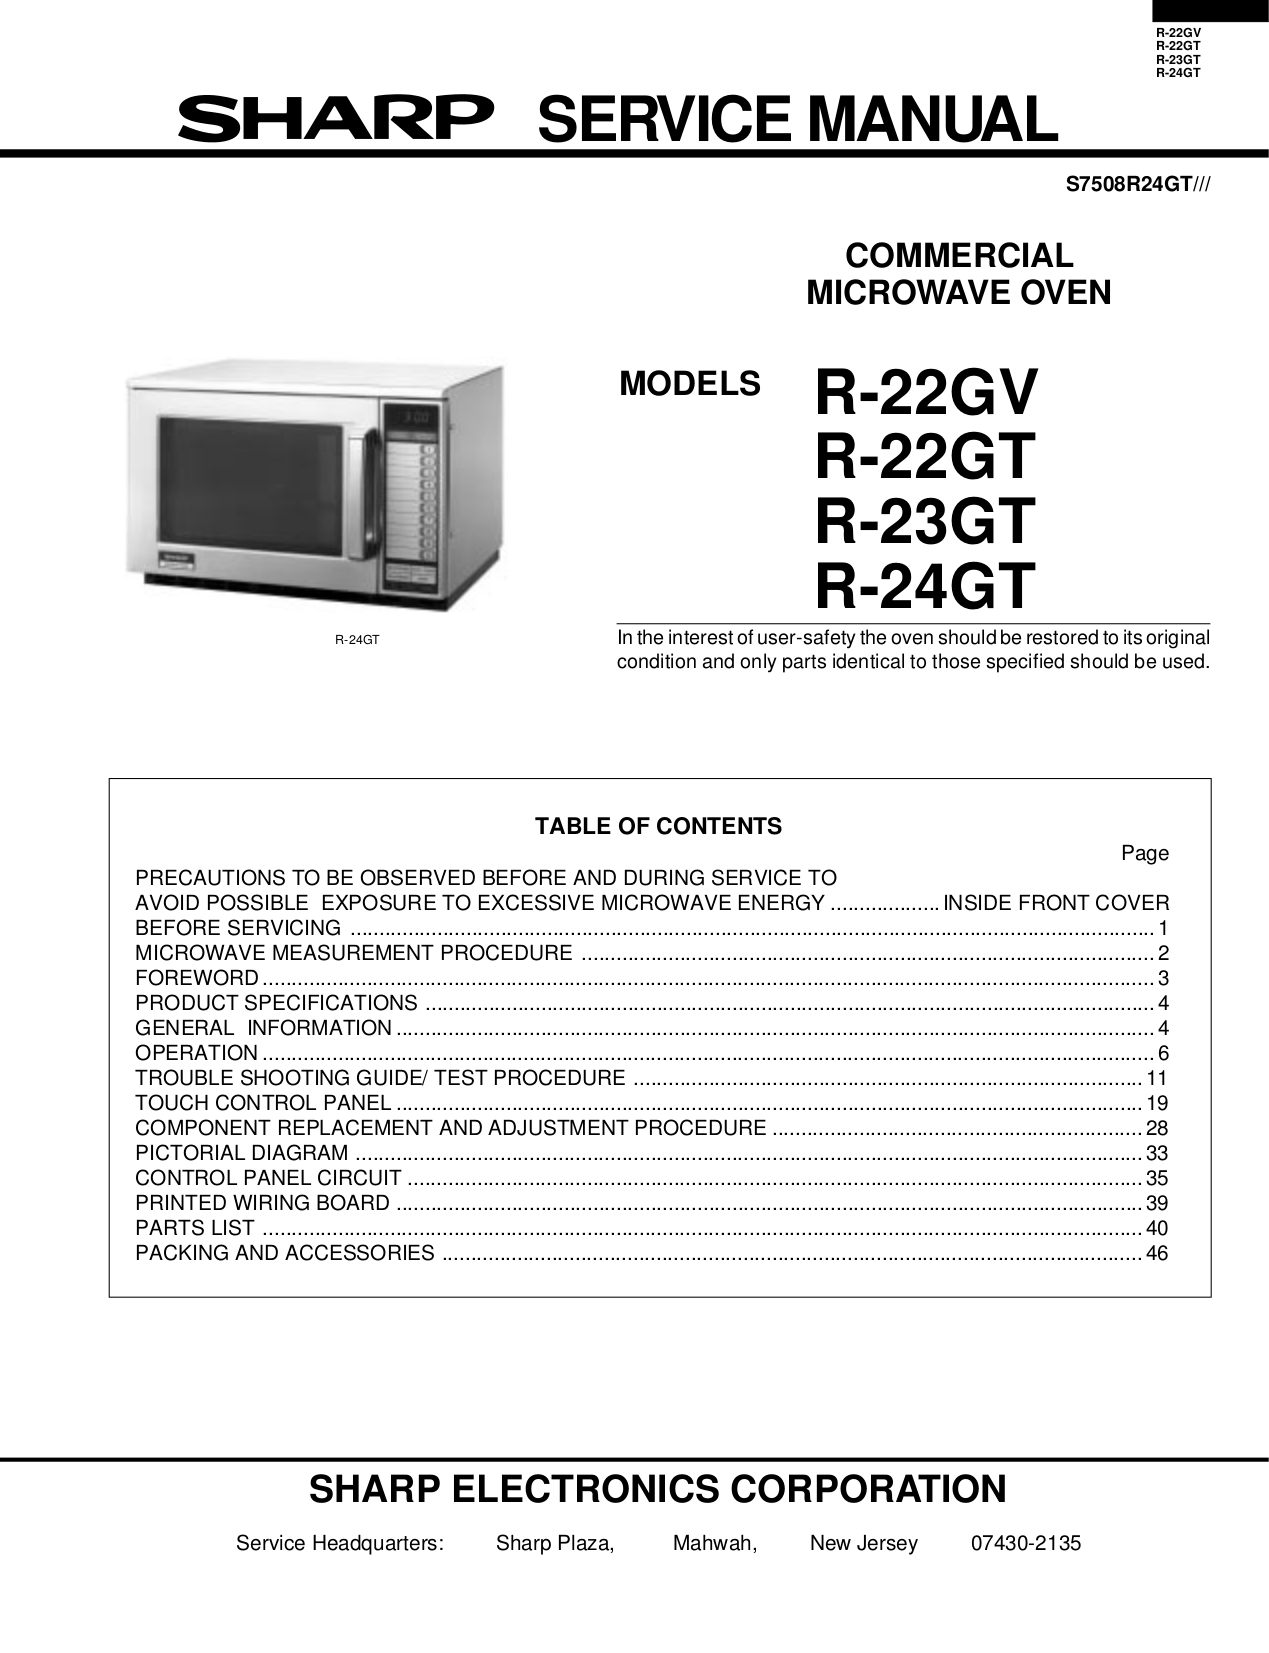 download free pdf for sharp r 23gt microwave manual rh umlib com sharp microwave manual r-1850a sharp microwave manual 1995